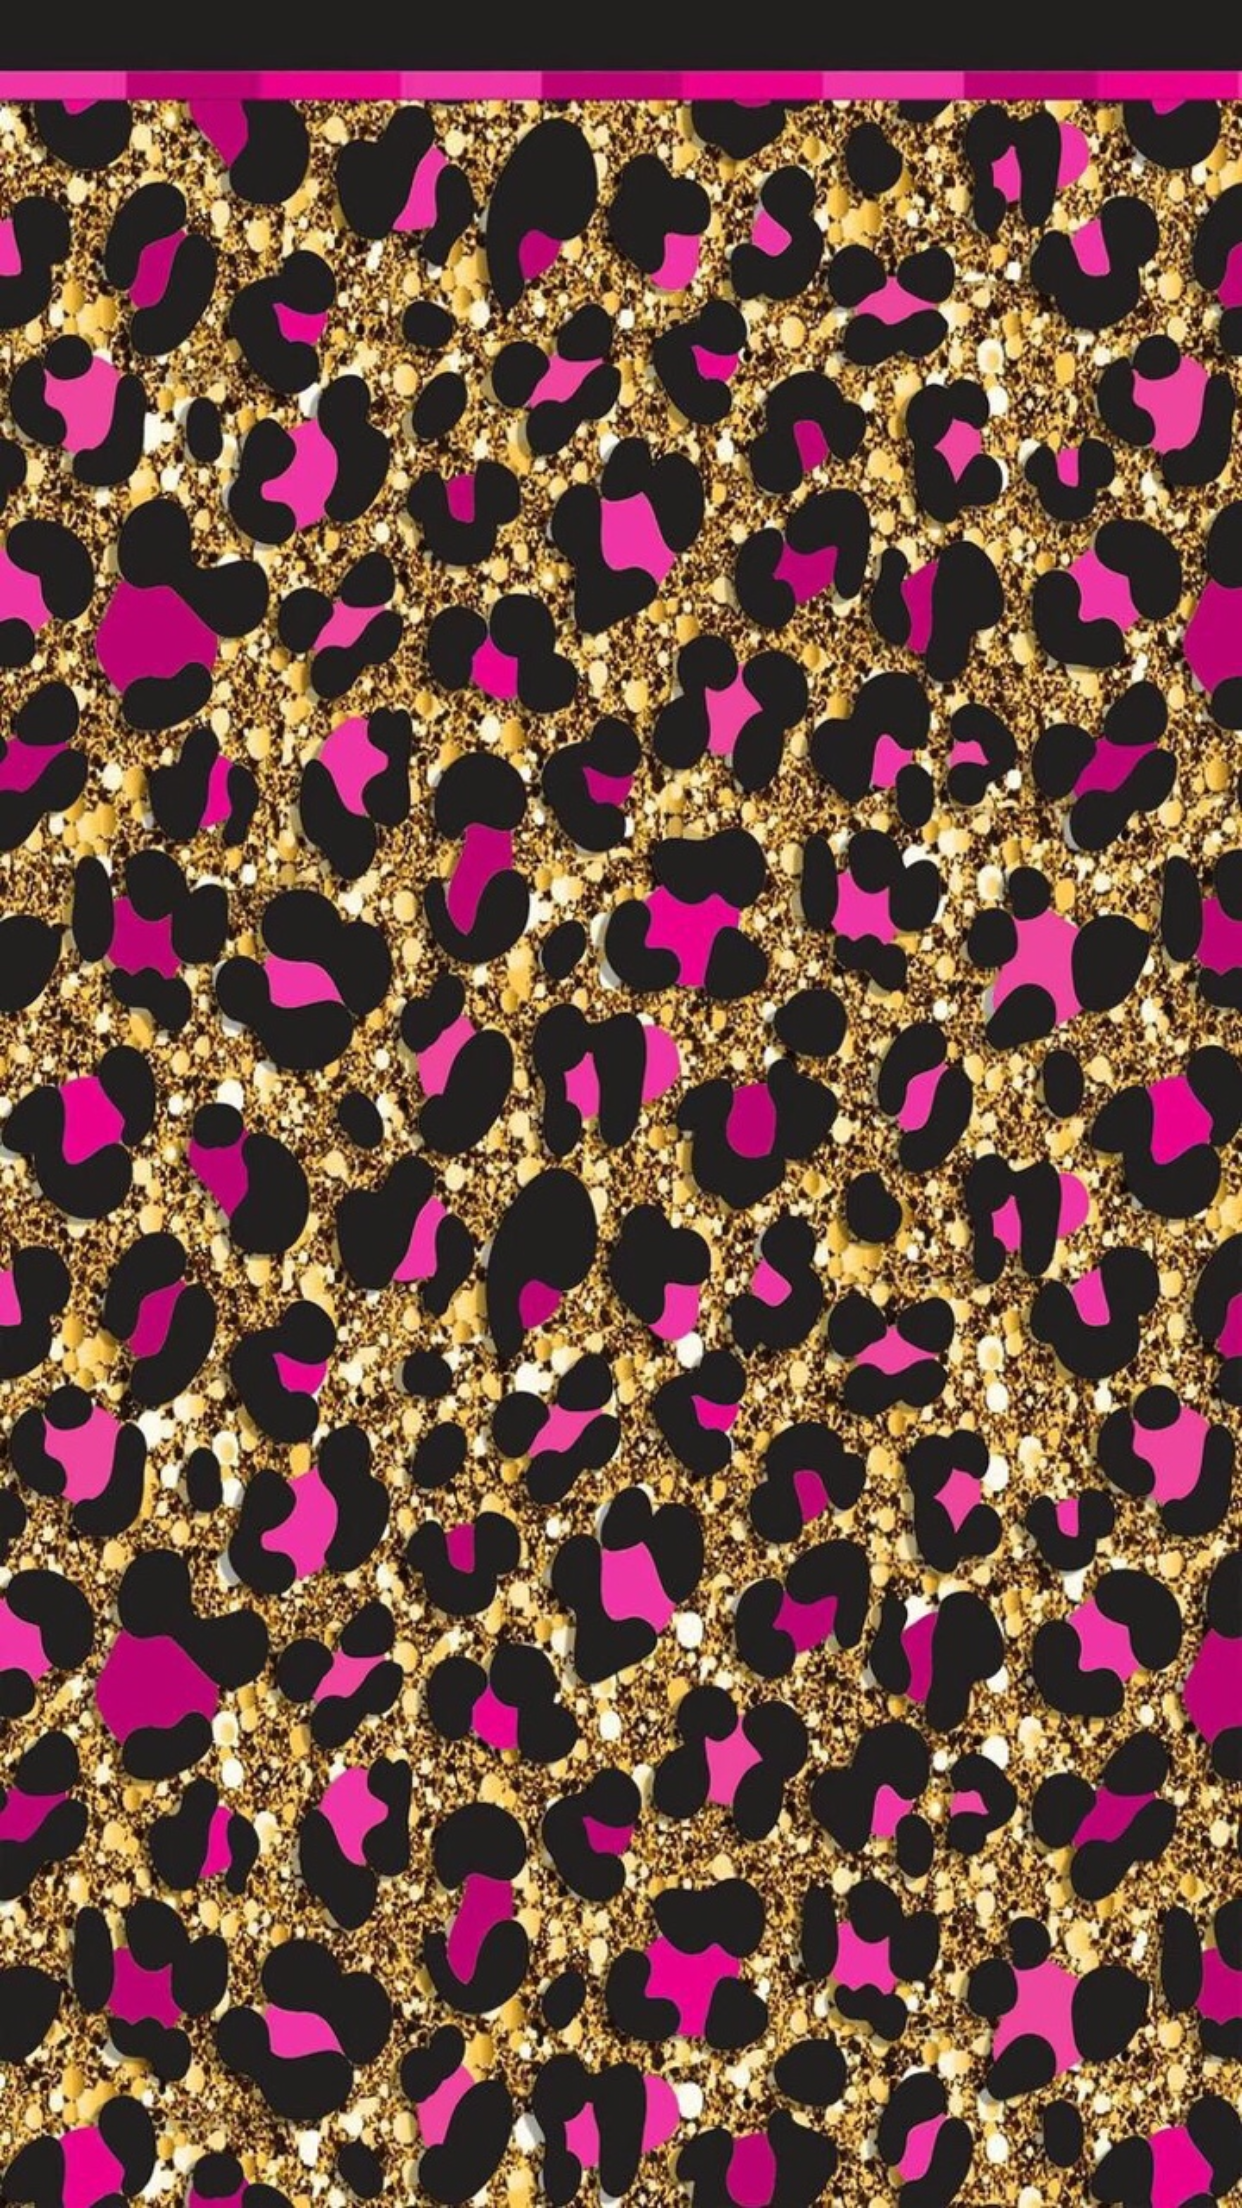 Pin by Amber on AnimalPrint Leopard print wallpaper